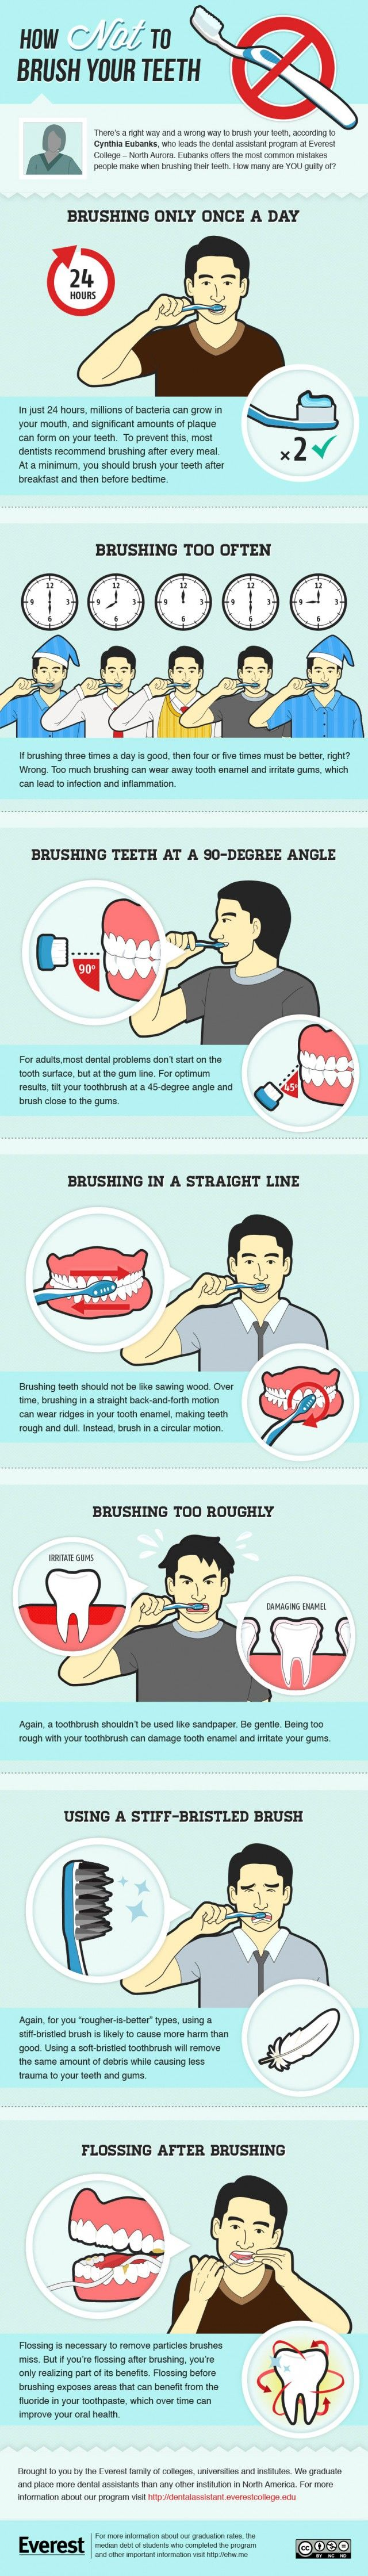 How Not to Brush Your Teeth [infographic]